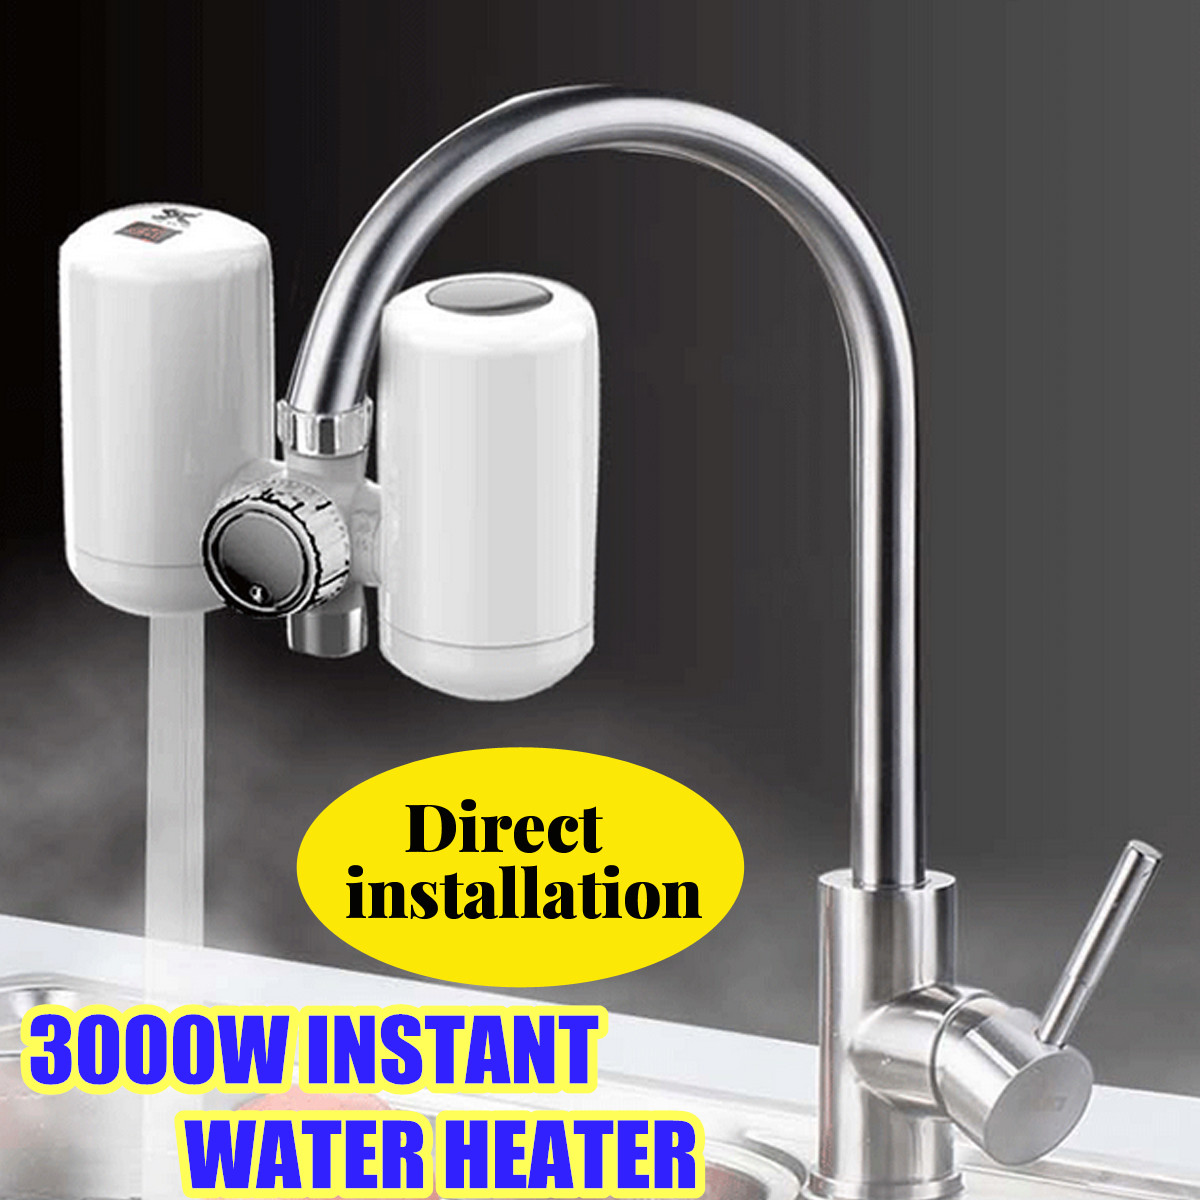 New Electric Kitchen Water Heater Tap Instant Hot Water Faucet Heater Cold Heating Faucet Kitchen Heating Tap Free Installation